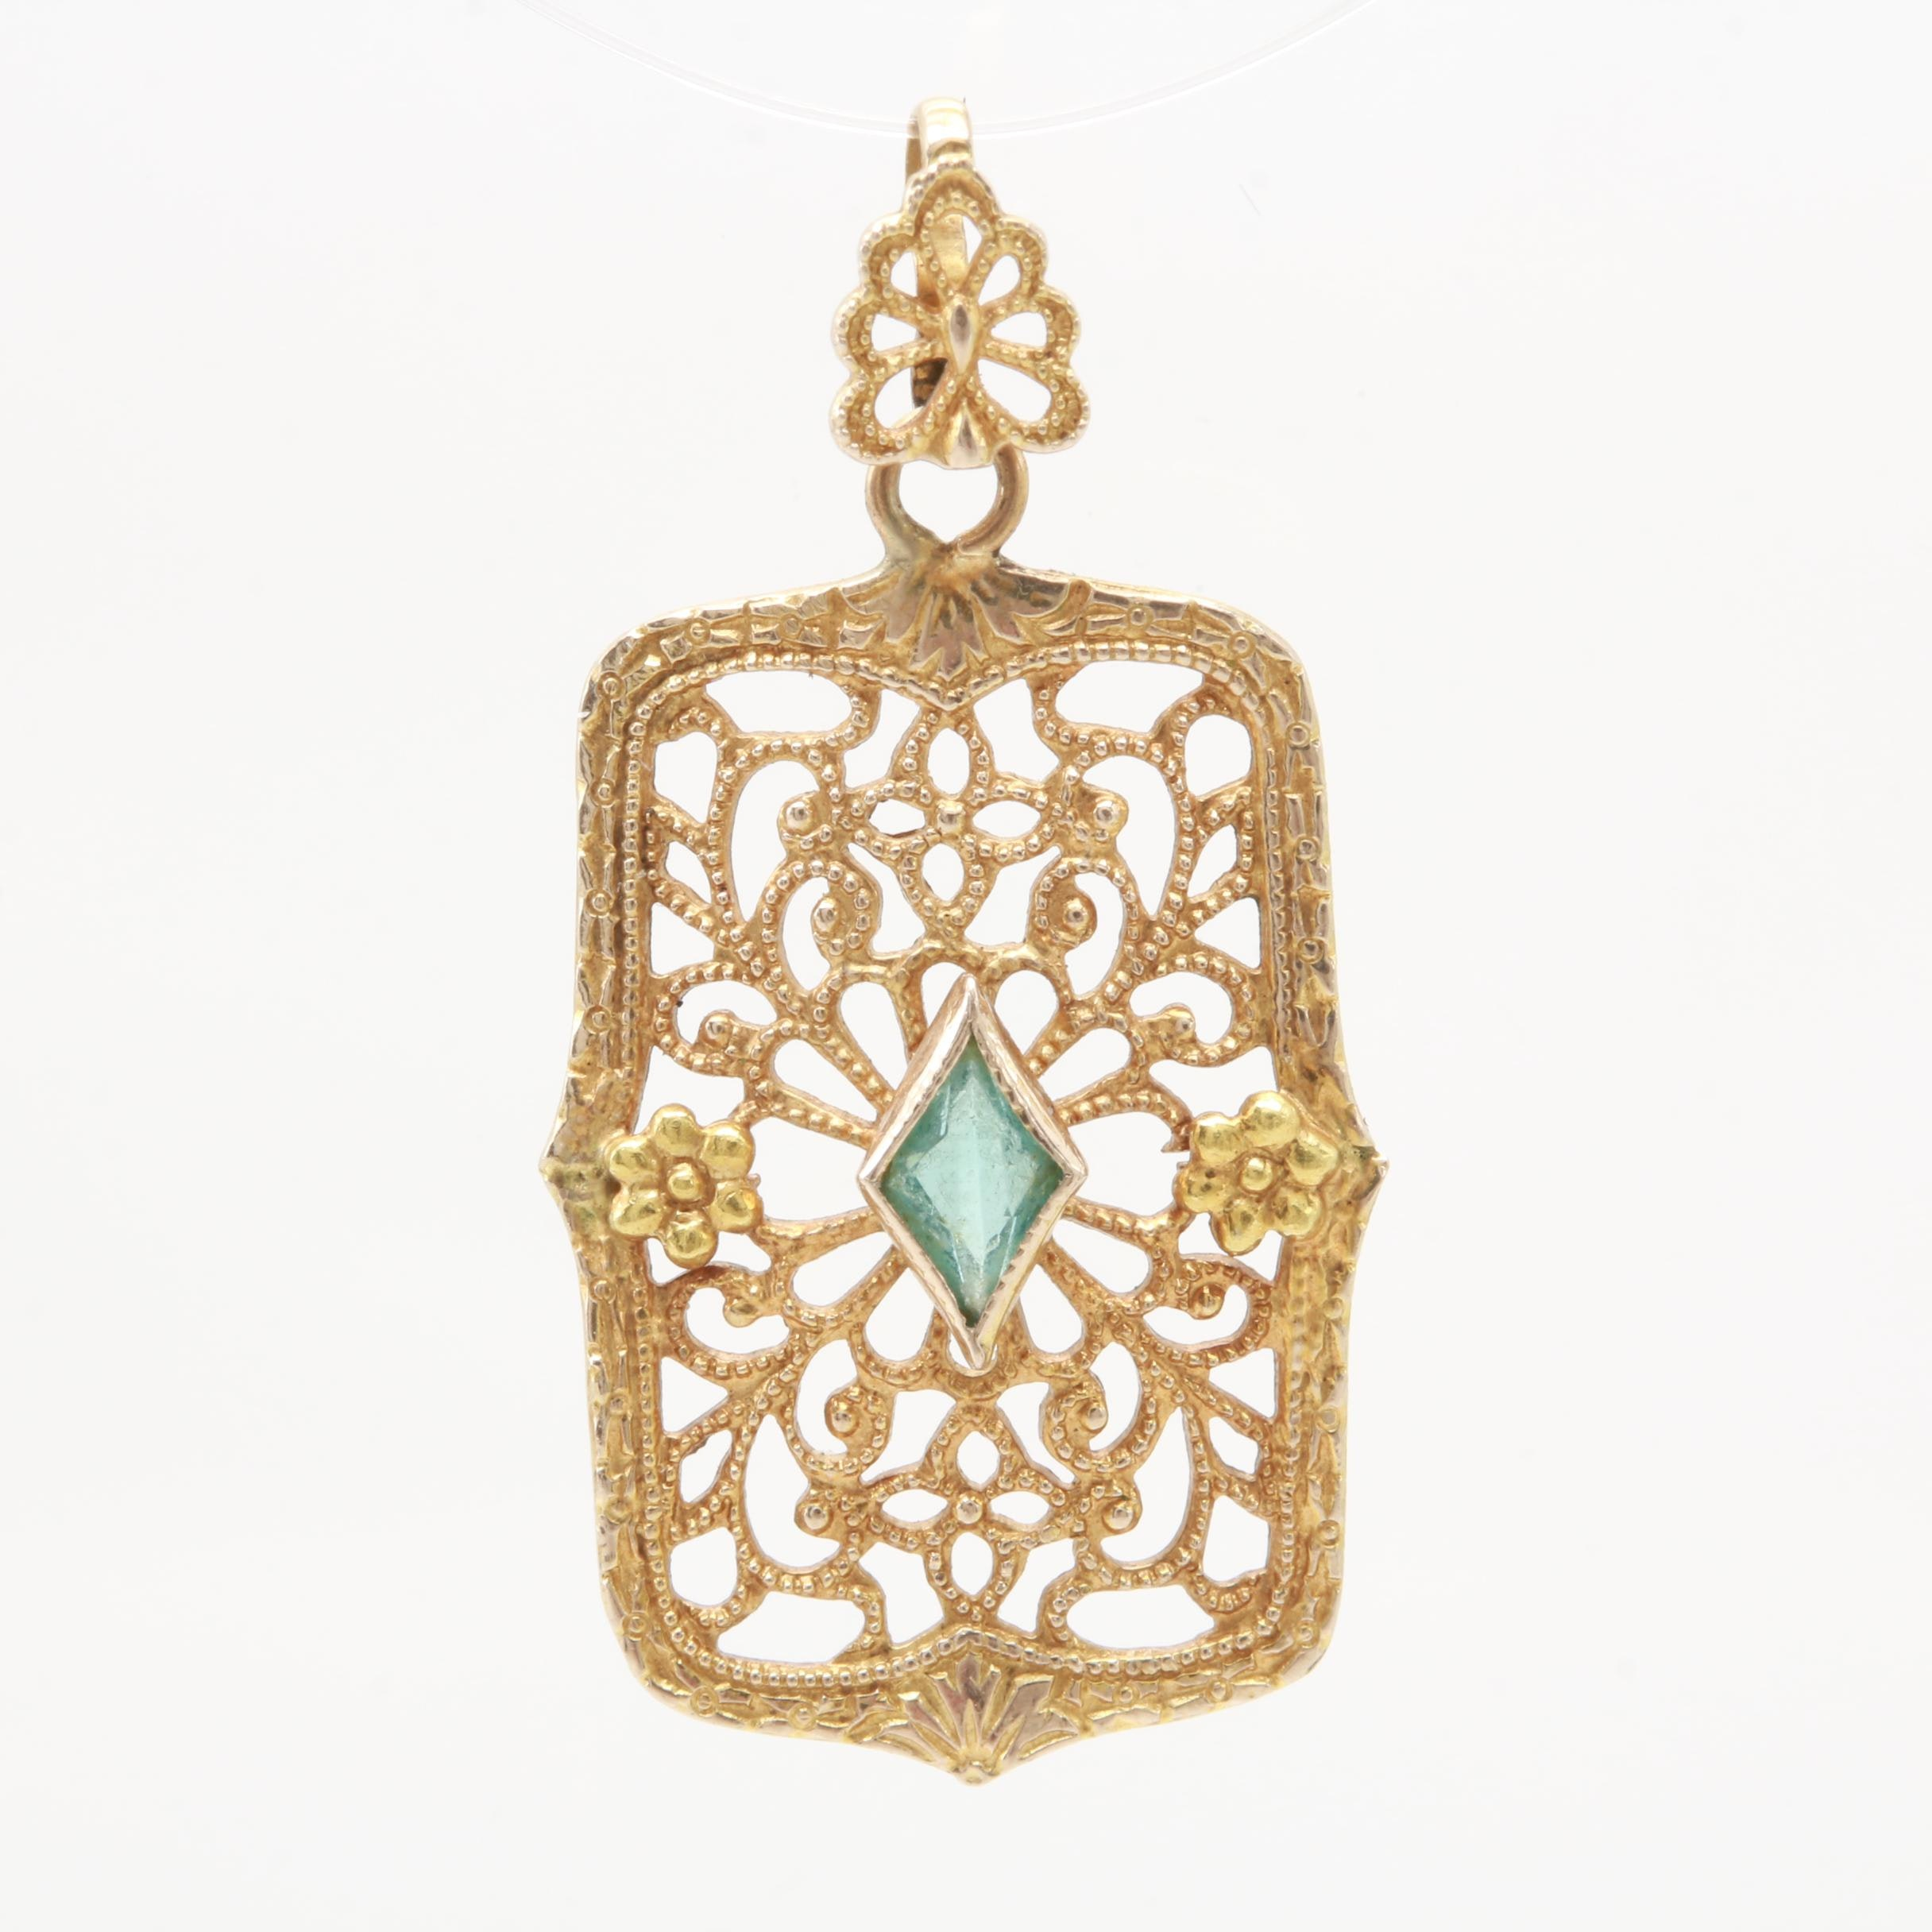 Vintage 10K Yellow Gold Glass Pendant with Filigree Openwork